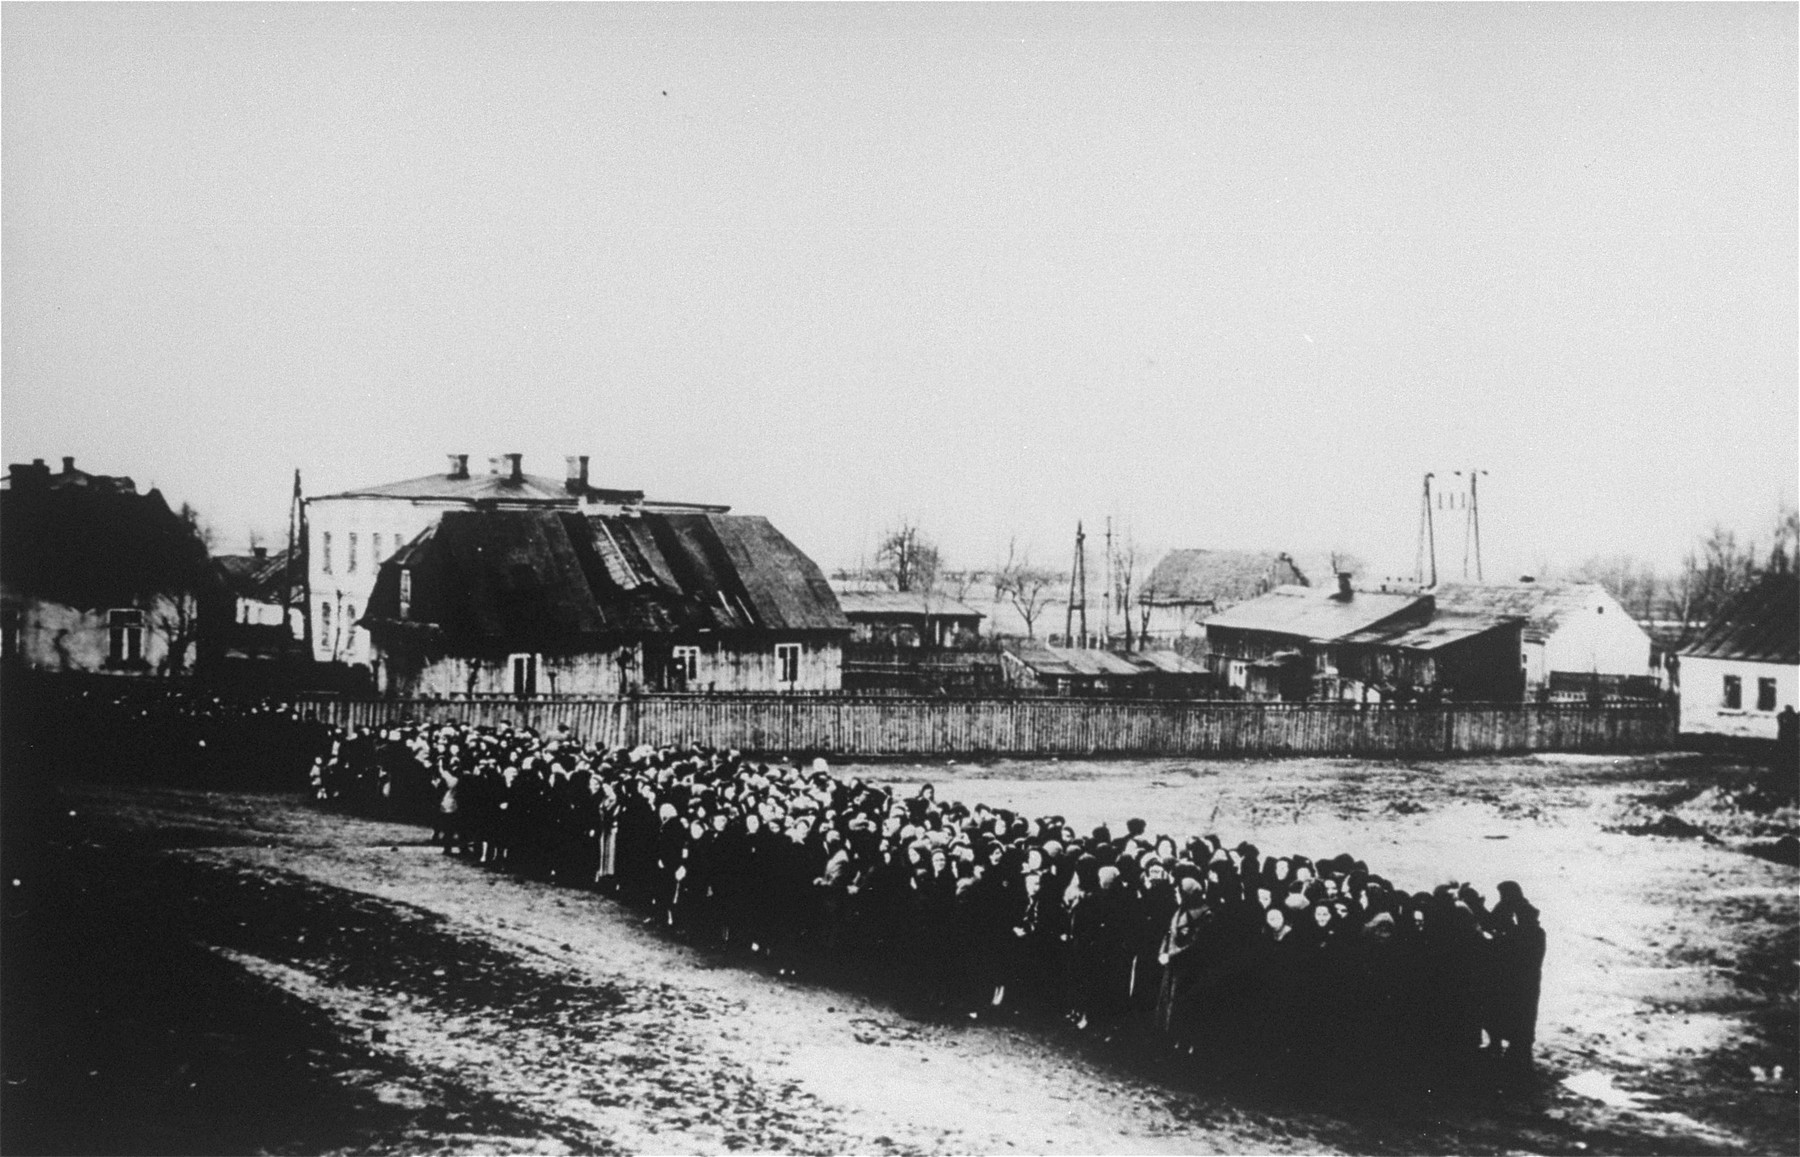 View of a column of Jews lined up along a road during a resettlement or deportation action.